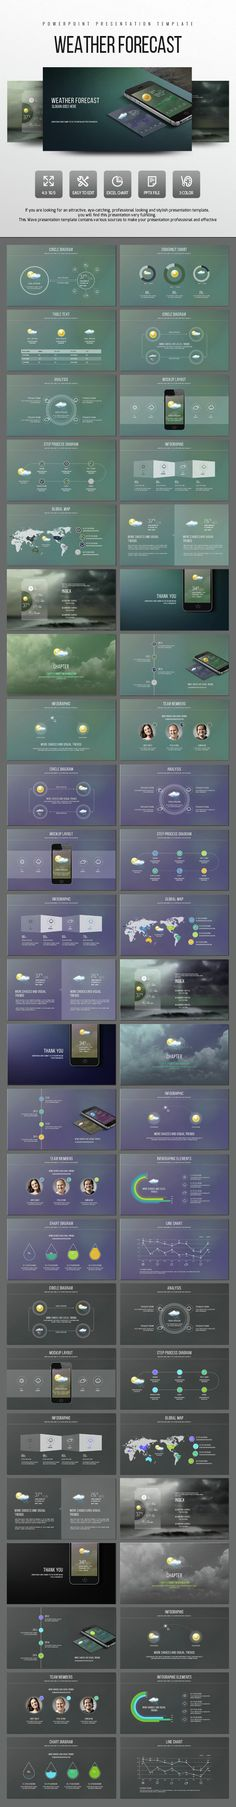 Purchase $15.00 Creative Presentation powerpoint template General Features 84 well designed powerpoint slides 4:3 and 16:9 aspect ratio 15 Cool Themes (Light...